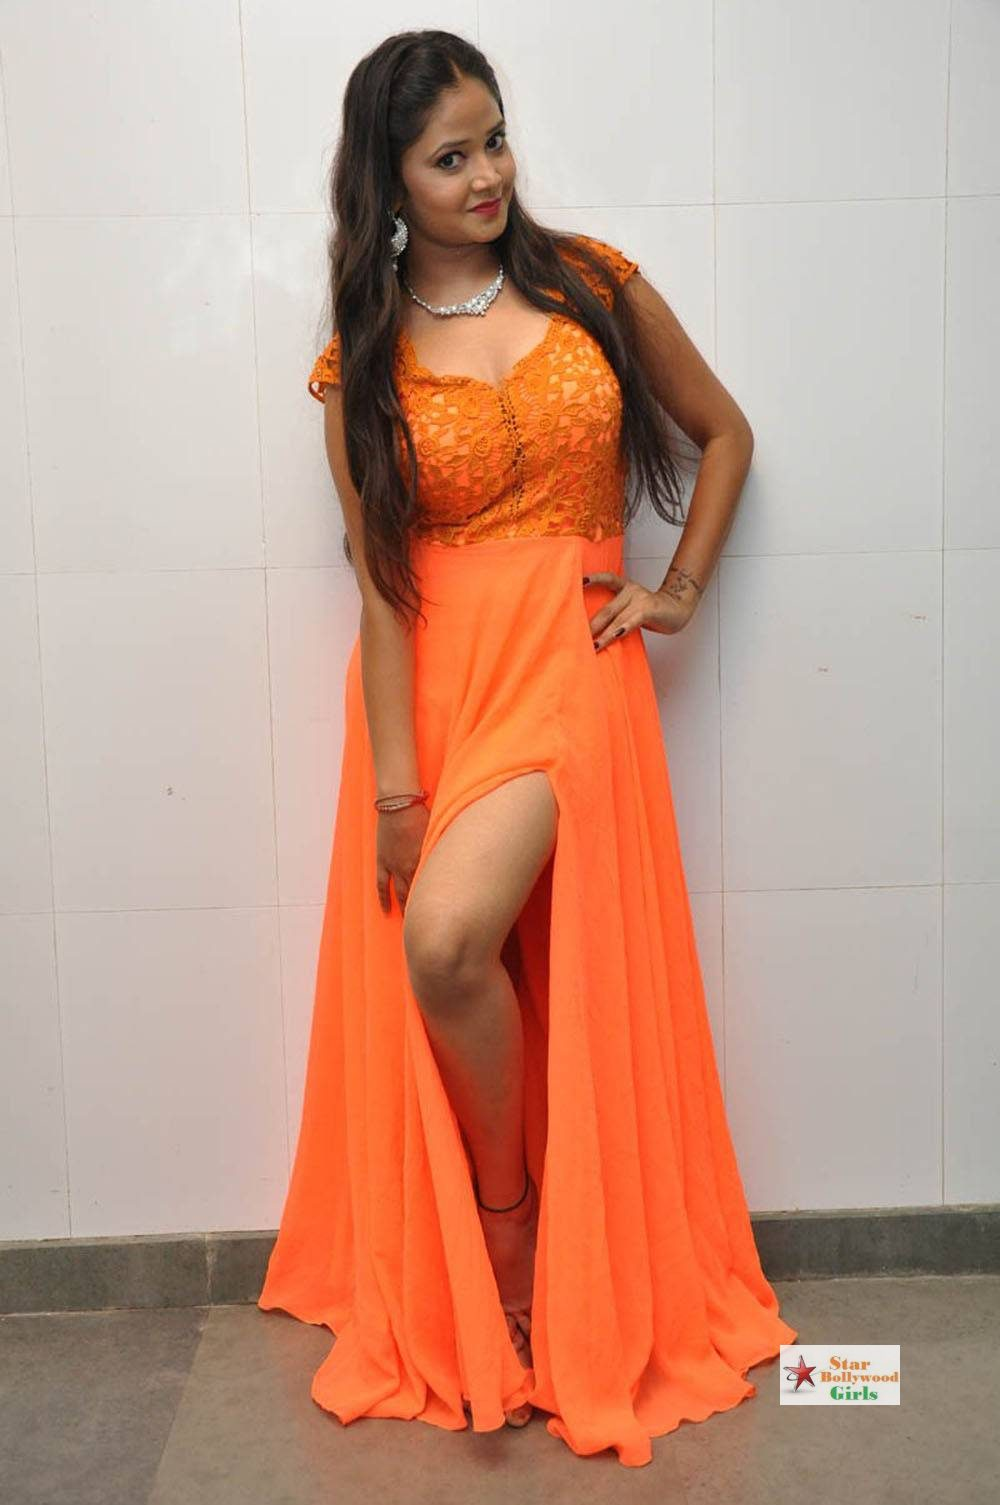 Shreya-Vyas-Stills-At-Asura-Movie-Audio-Launch-9